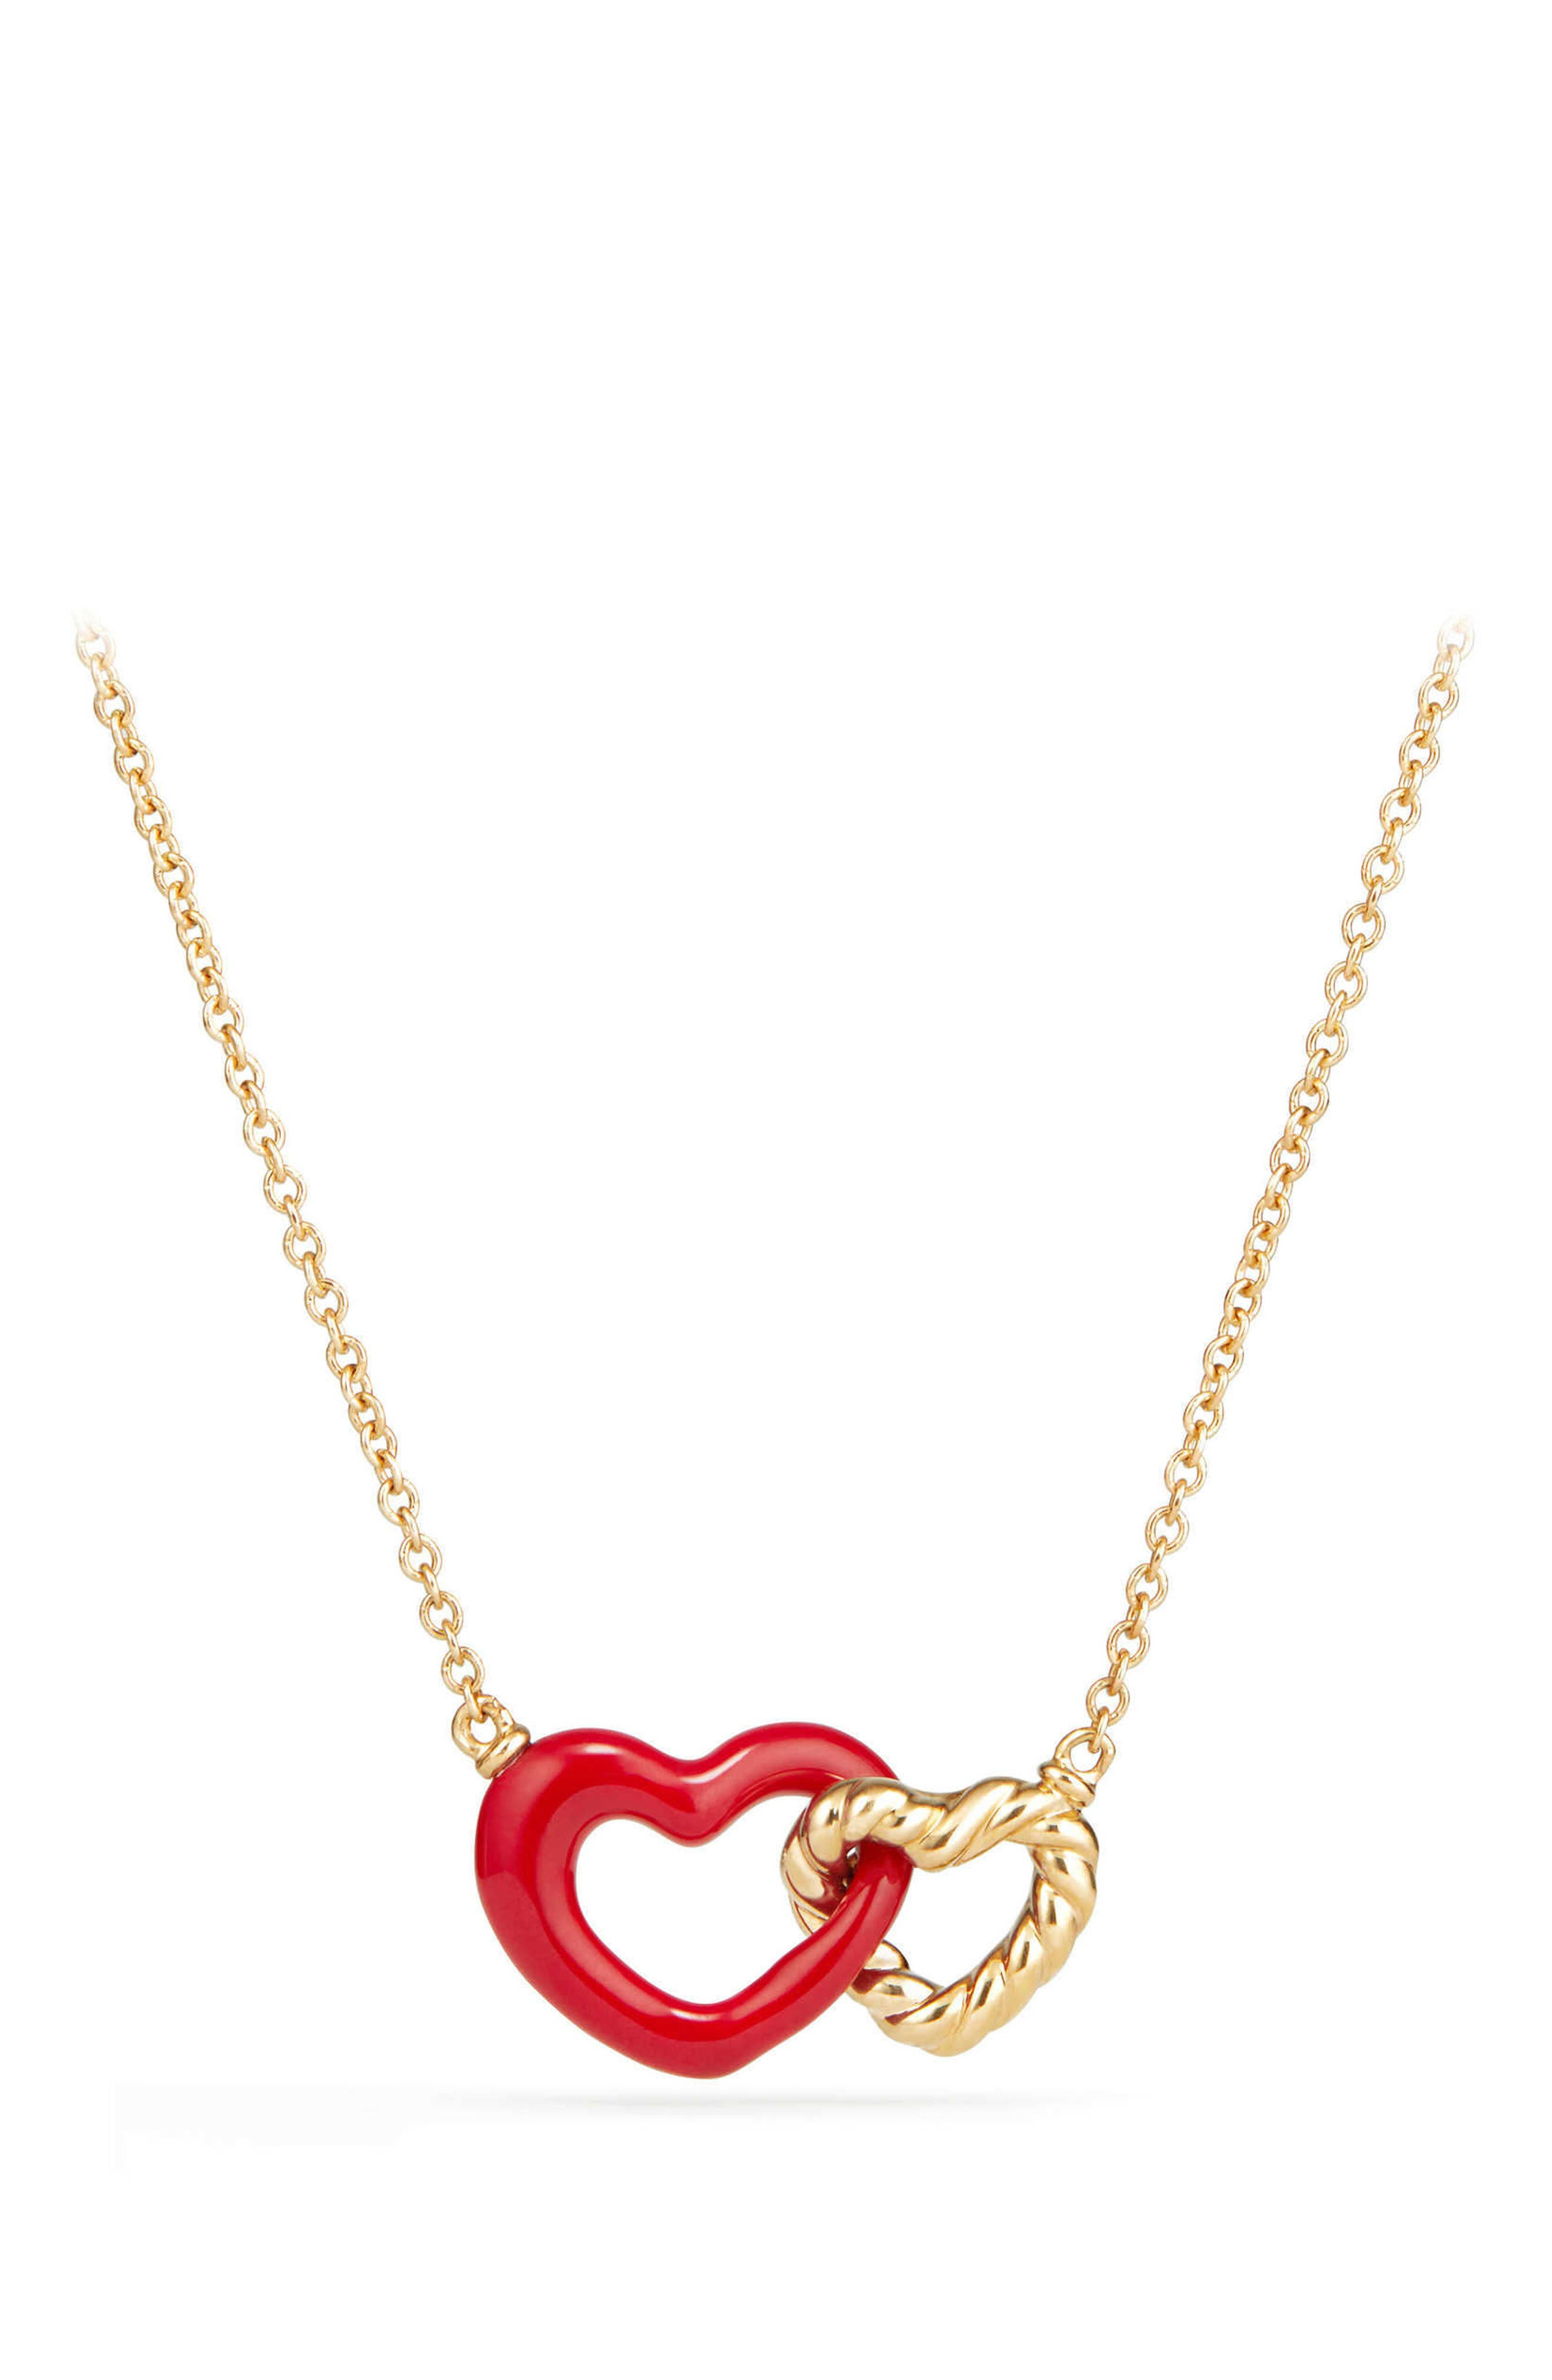 Double Heart Pendant Necklace with Red Enamel and 18K Gold,                             Main thumbnail 1, color,                             Gold